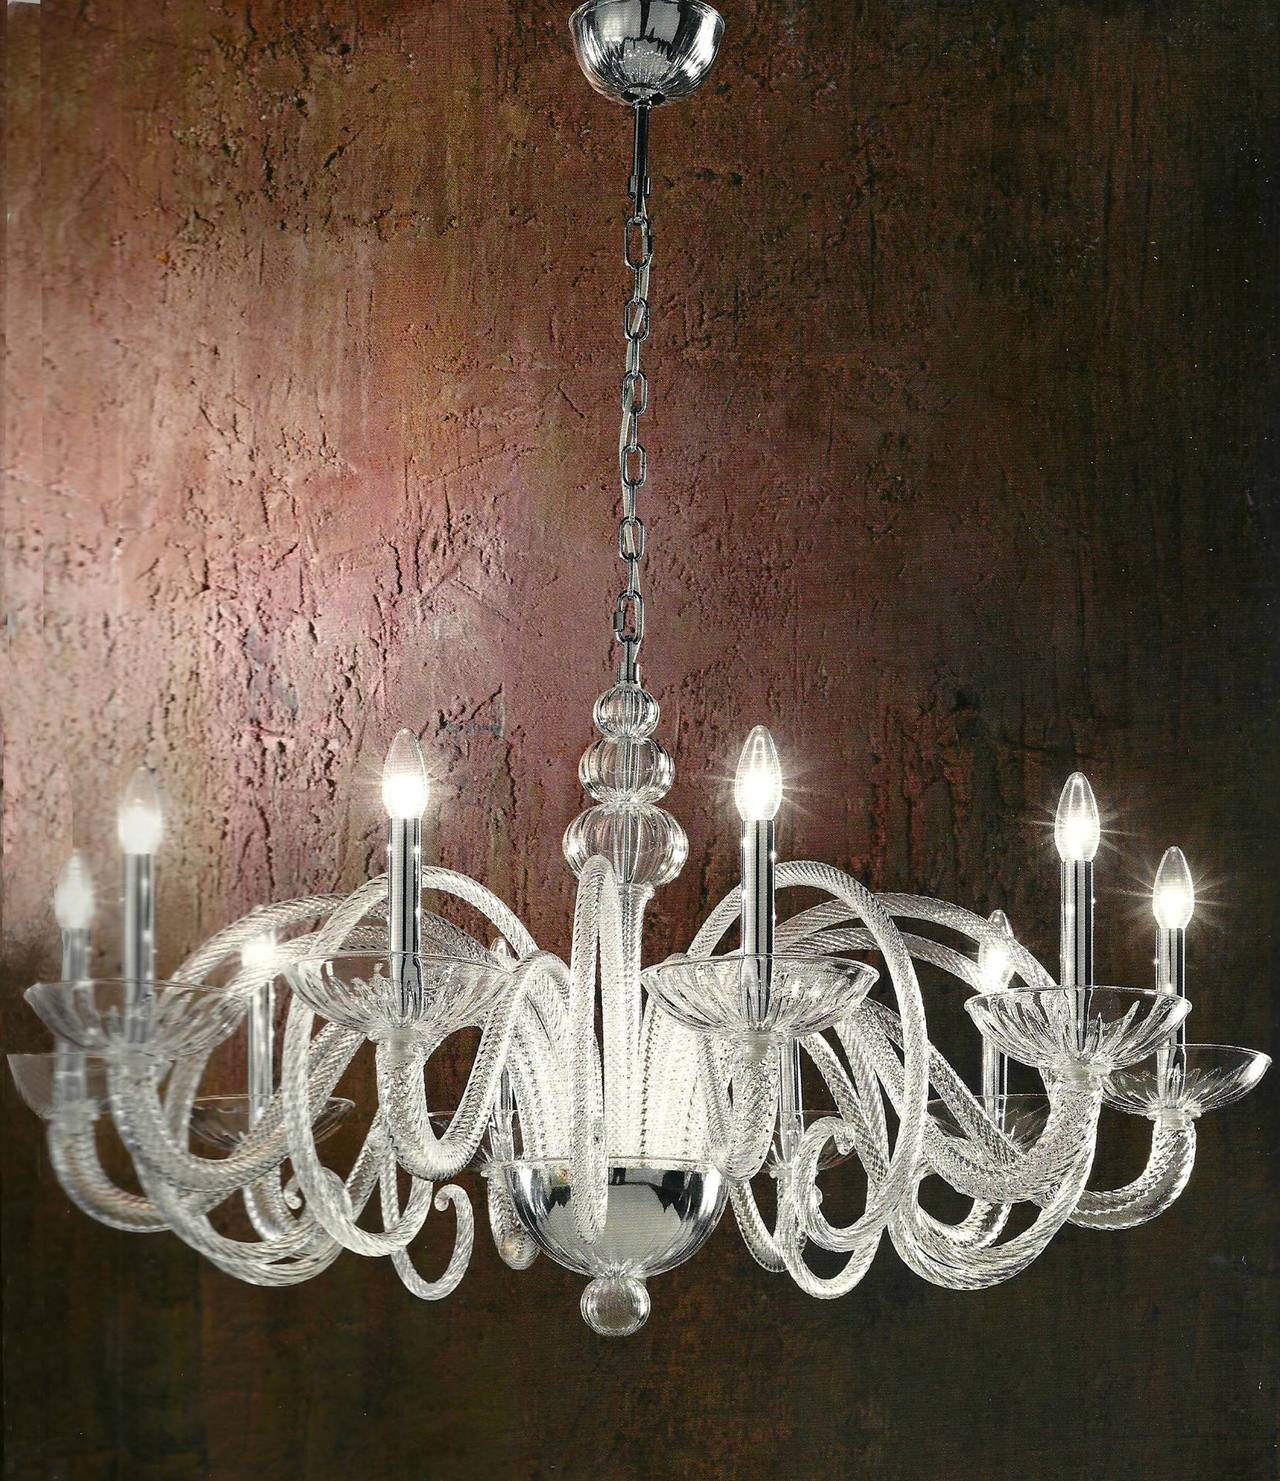 Large Italian Mid-Century Modern Style Handblown Venetian glass chandelier in the style of Barovier e Toso in clear glass and with ten curved spiraling arms.   The chandelier itself (without chain) is 24